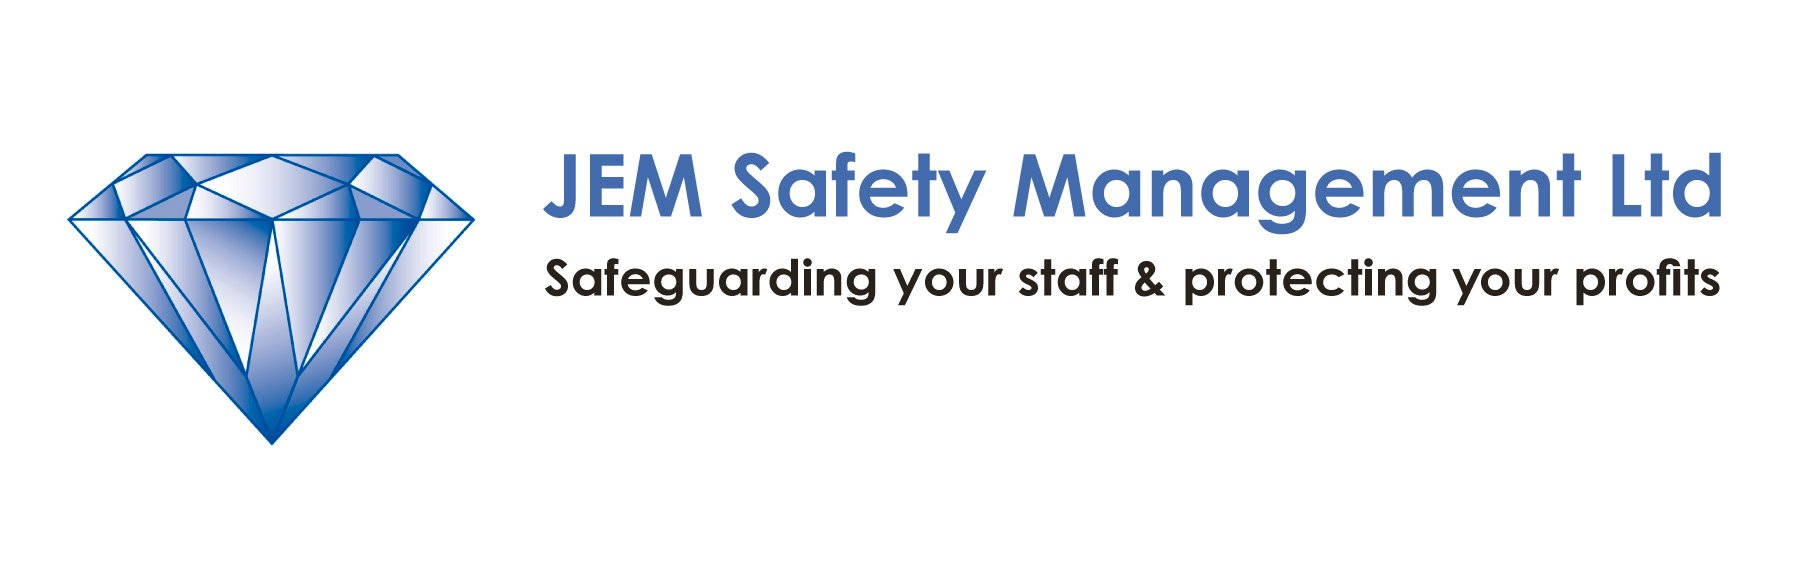 JEM Safety Management Ltd